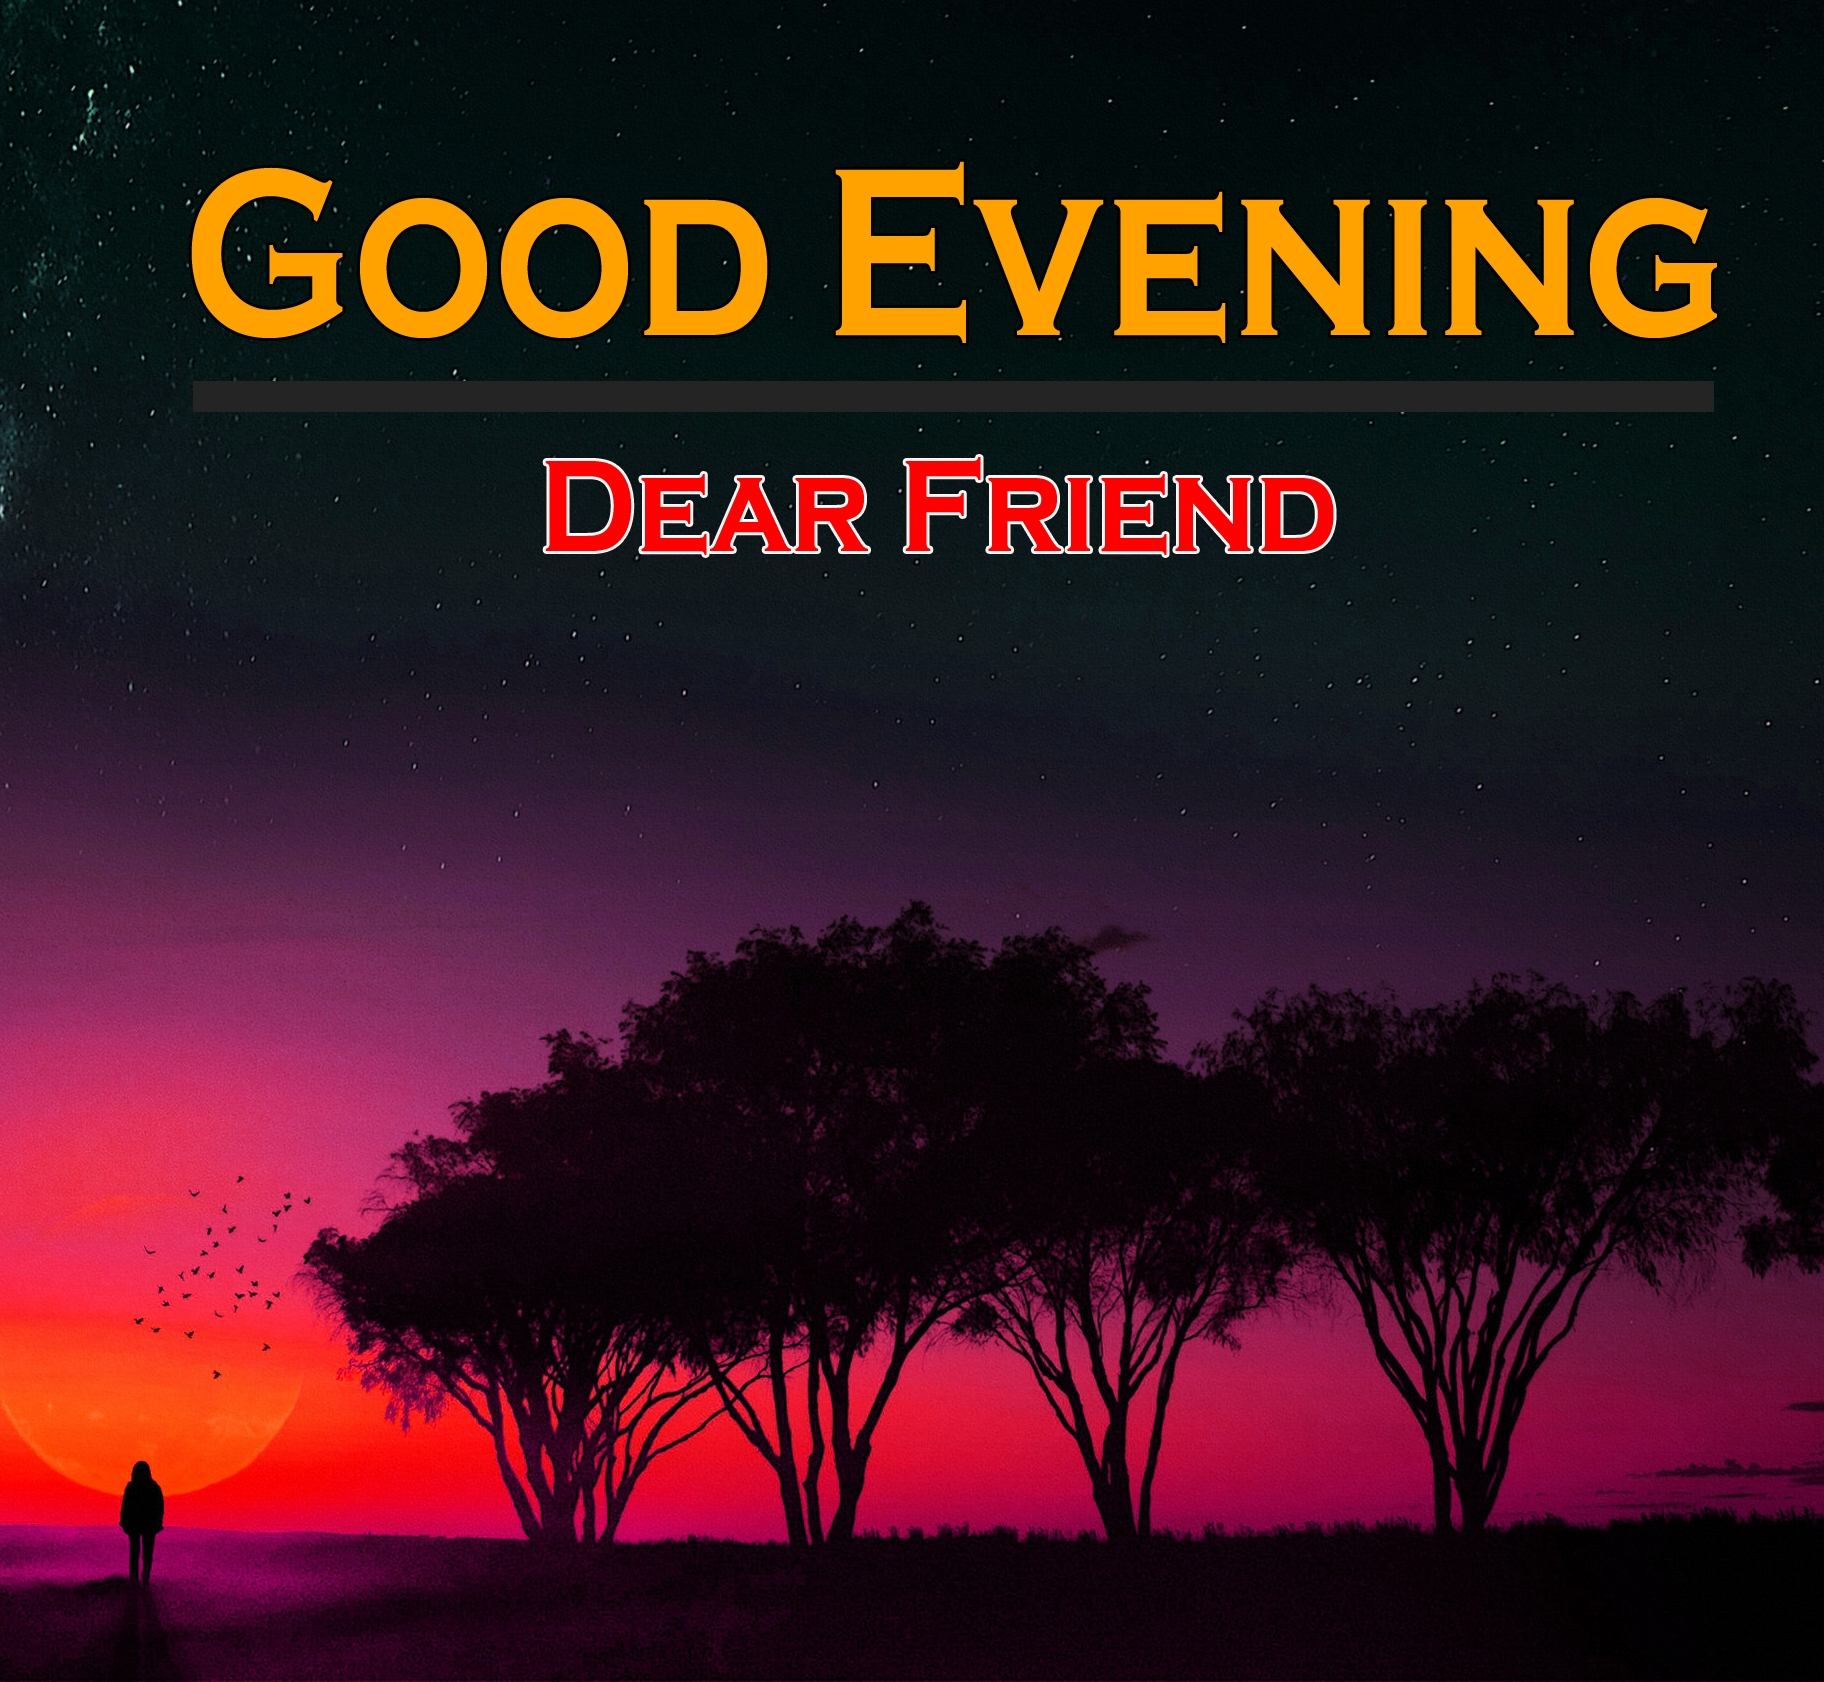 good evening photo download 5